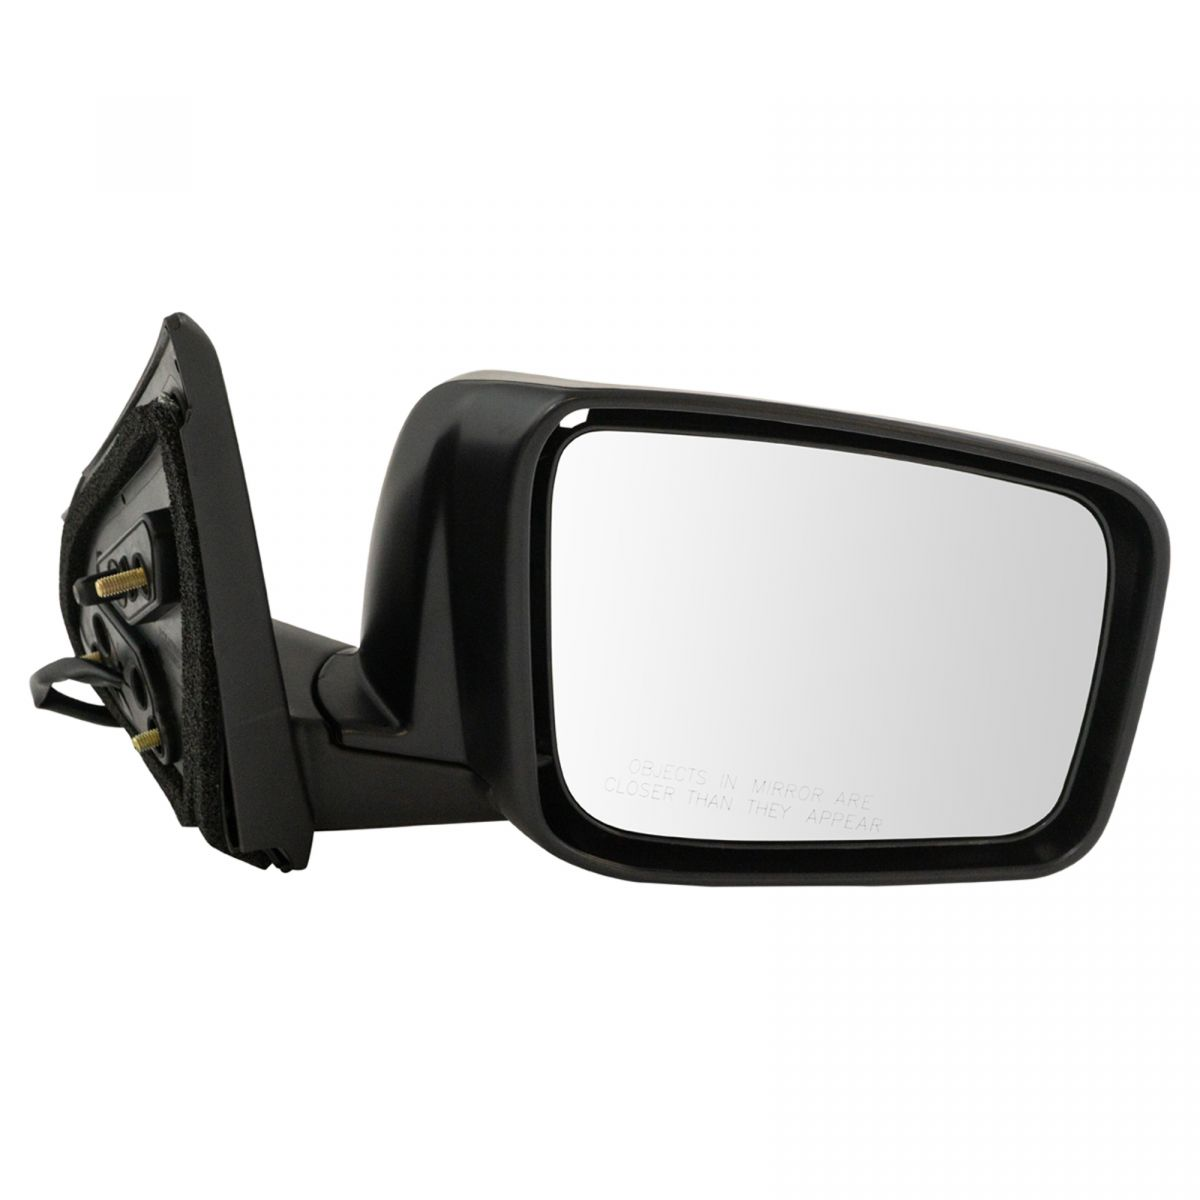 Value Mirror Driver Left Side Power Heated Primered LH Hand For Honda OE Quality Replacement